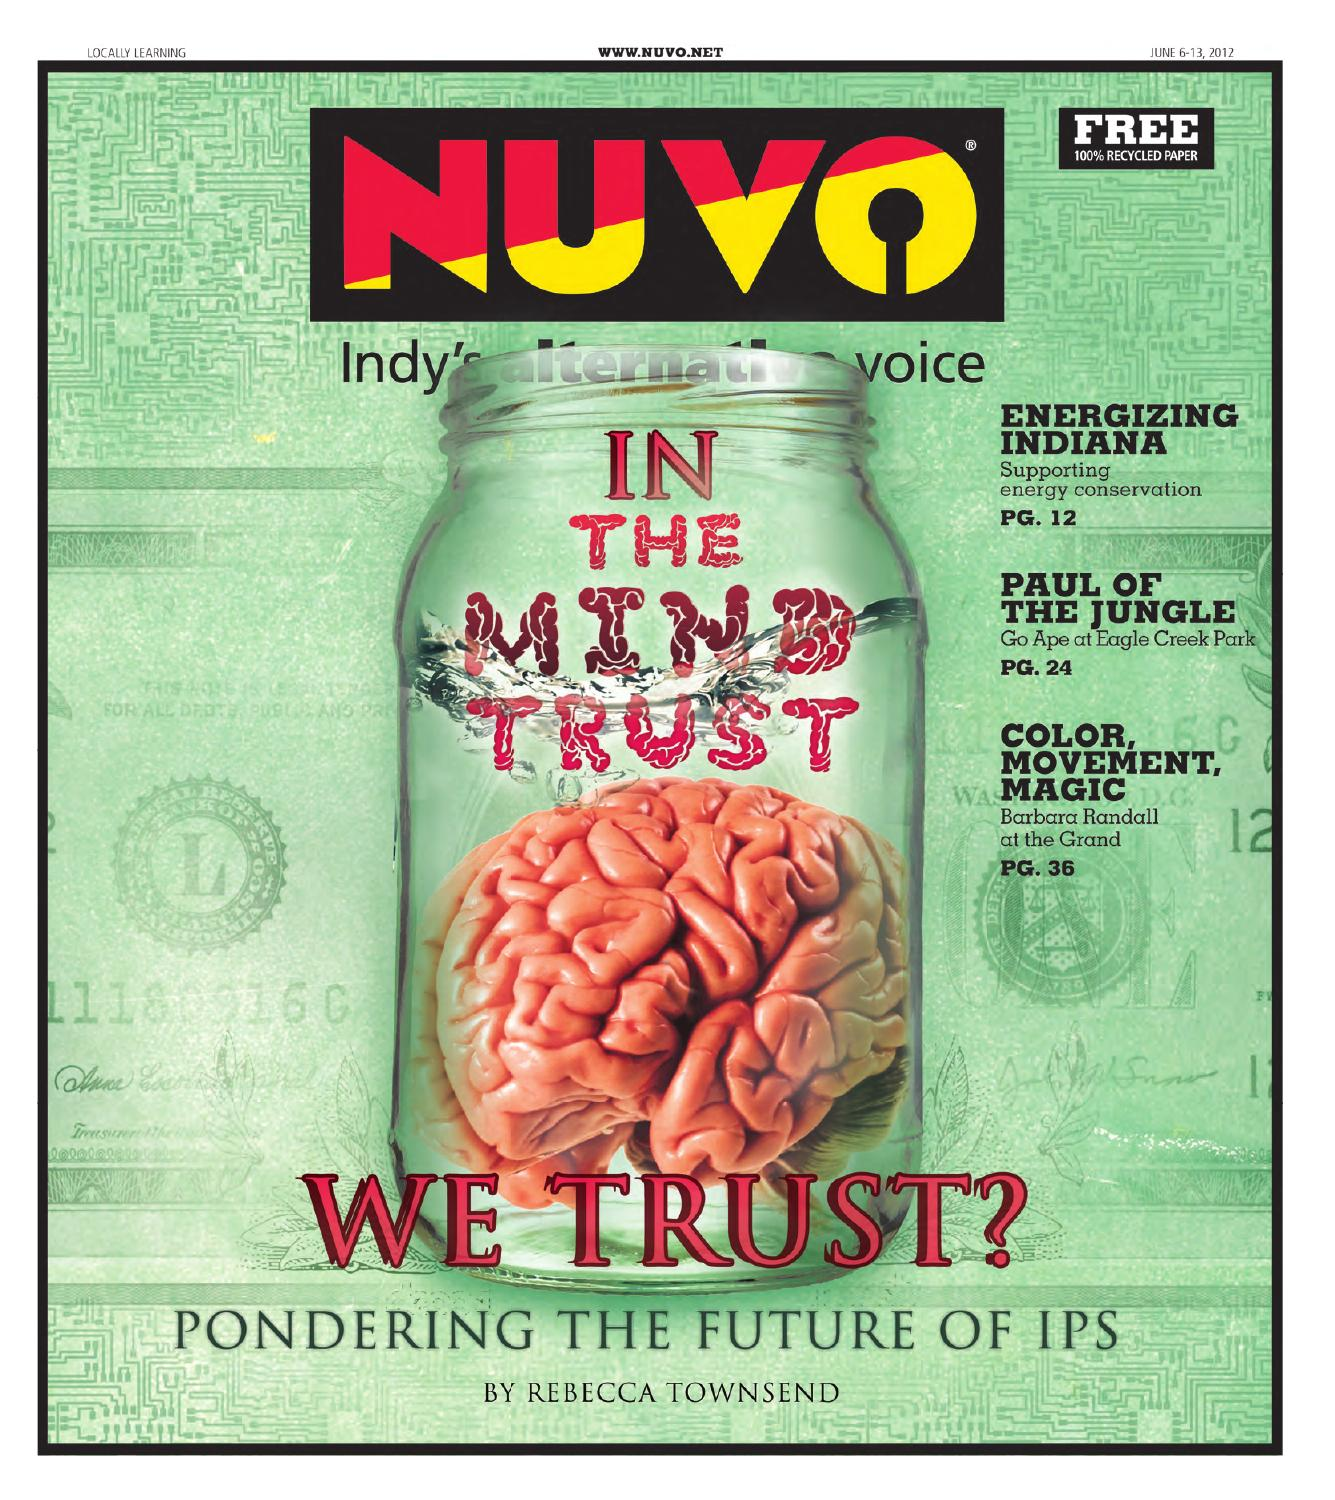 NUVO:Indy\'s Alternative Voice - June 6, 2012 by NUVO Newsweekly - issuu